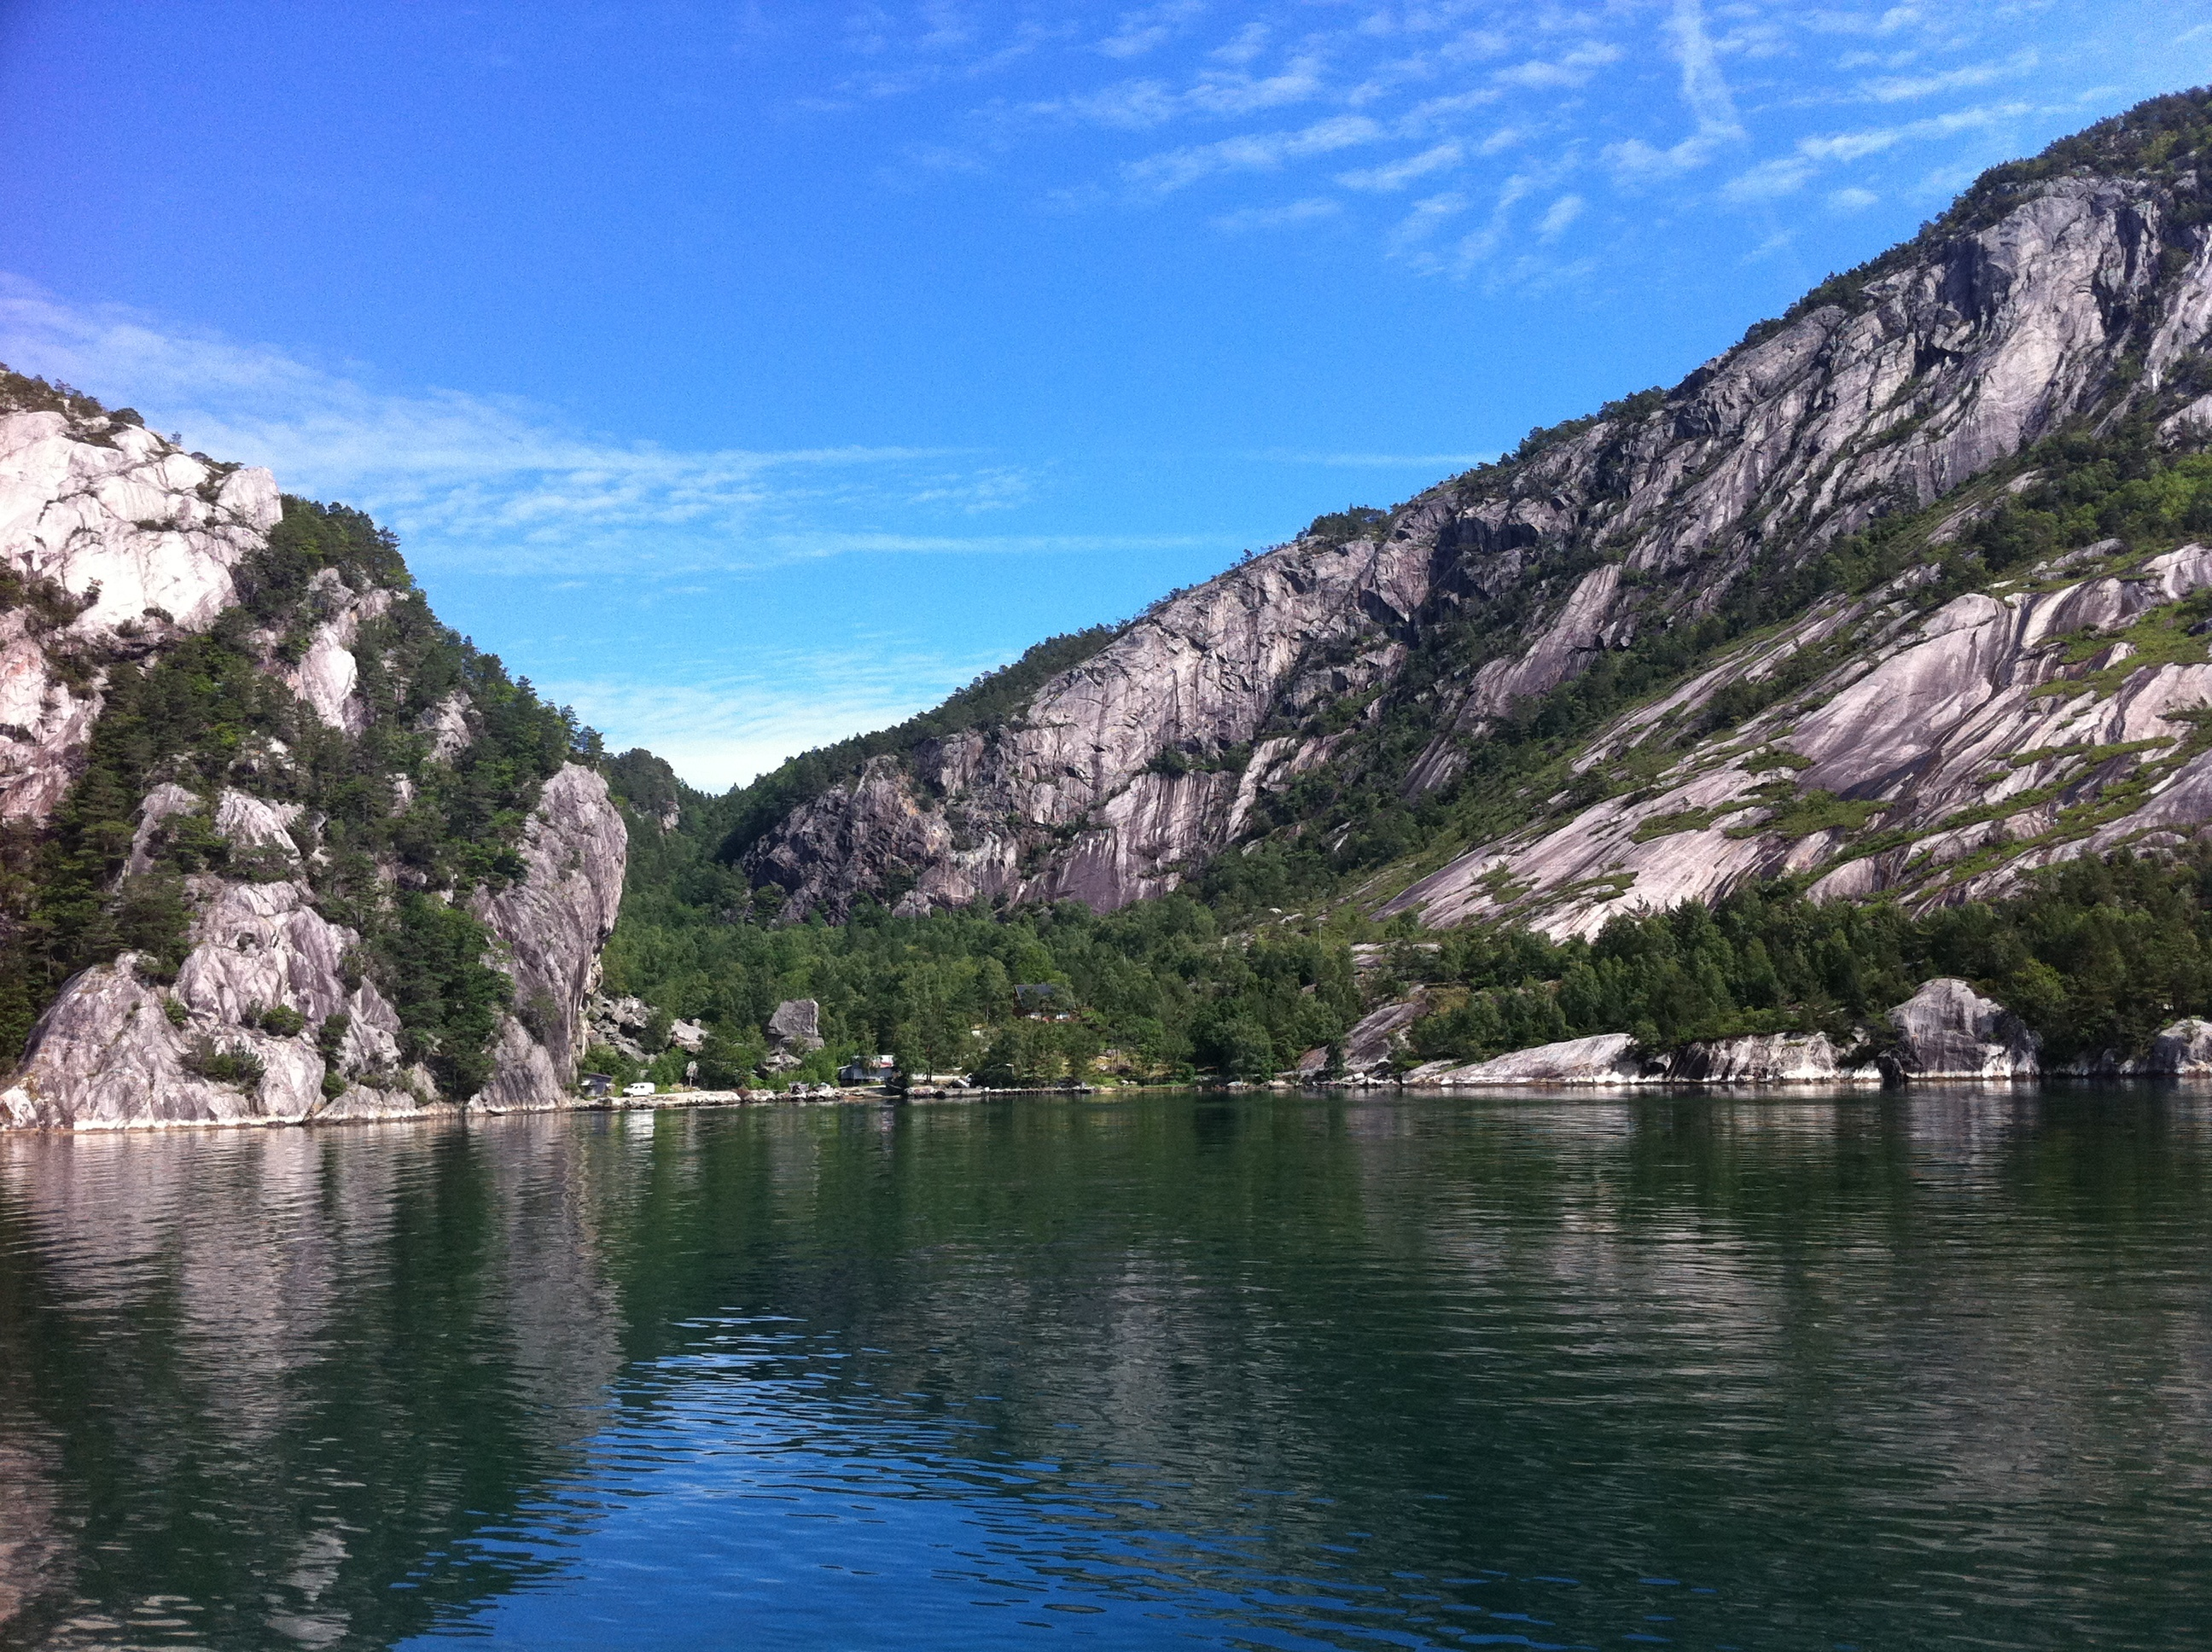 Copper Mine in Lysefjord, one of the many sights to be seen on the boat tour